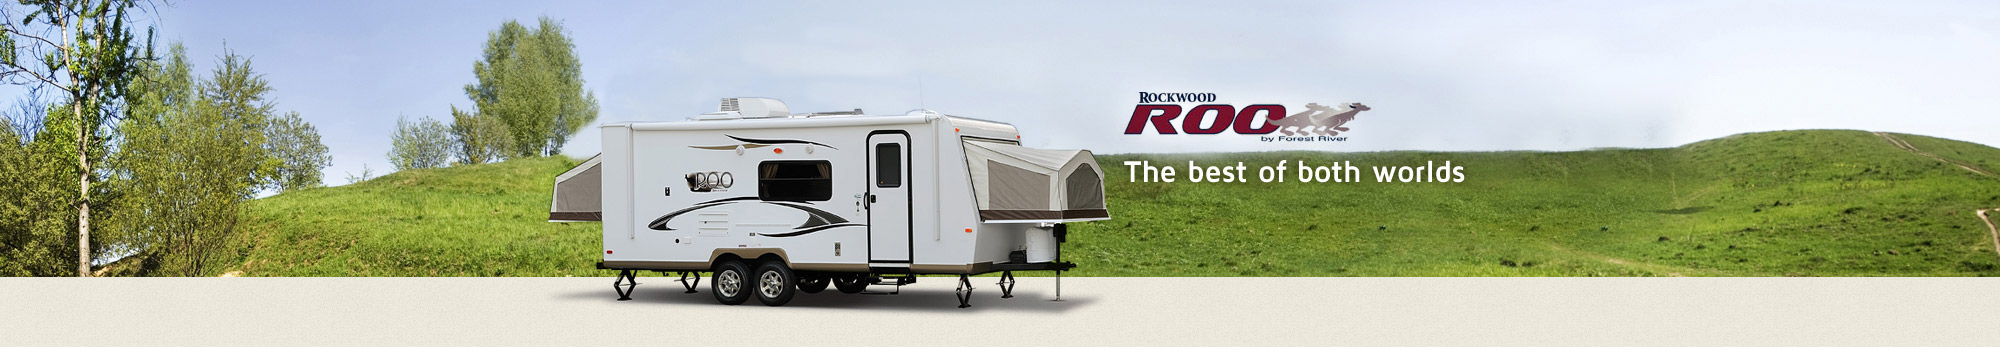 Have the best of both worlds with Rockwood Roo RV